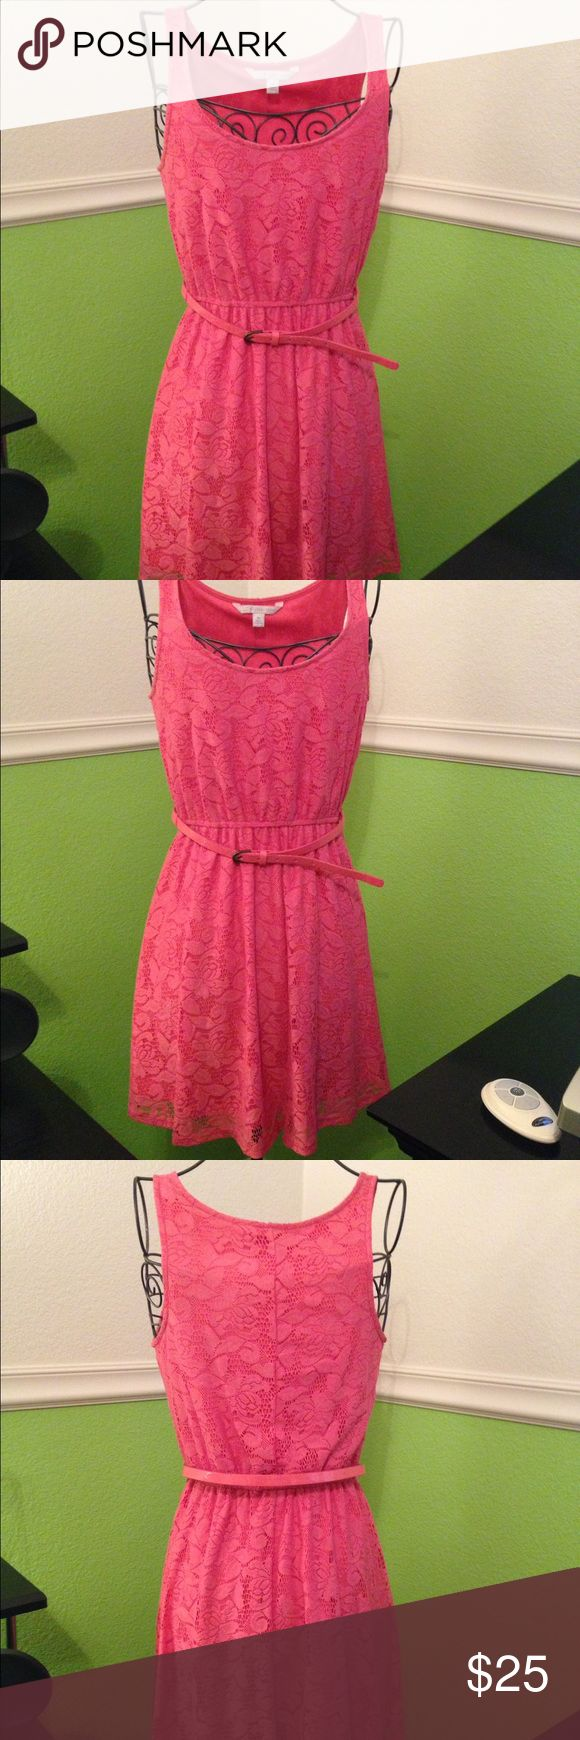 Salmon Floral Dress A pretty salmon color Floral dress. Stretchy material and comes with matching belt.Only worn once!! In great condition!! LC Lauren Conrad Dresses Midi